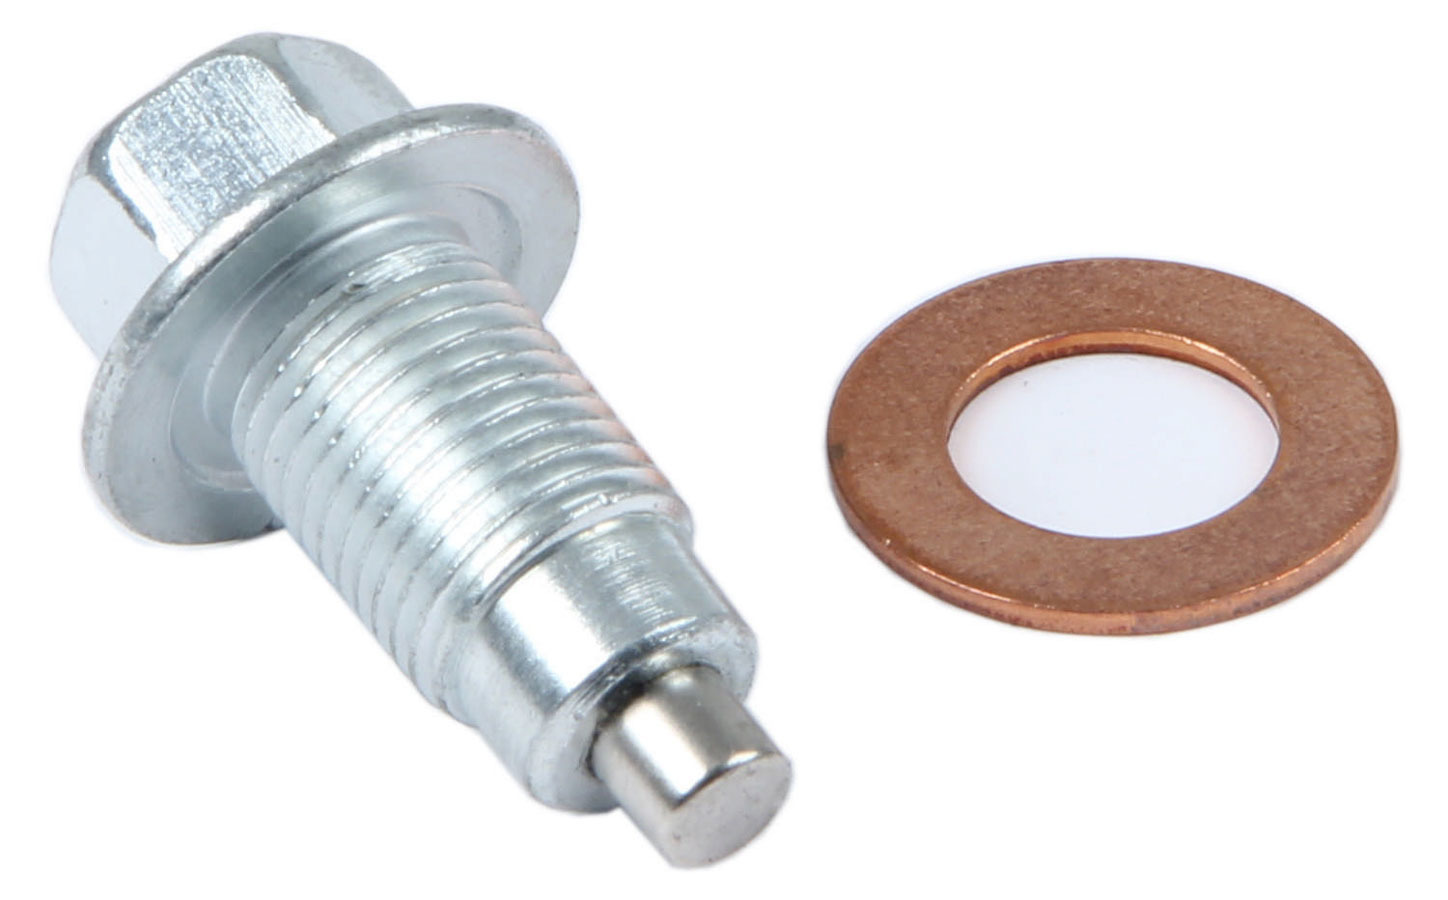 Champ Pans DP Drain Plug, 1/2-20 in Thread, 3/4 in Hex Head, Copper Washer, Magnetic, Steel, Natural, Each